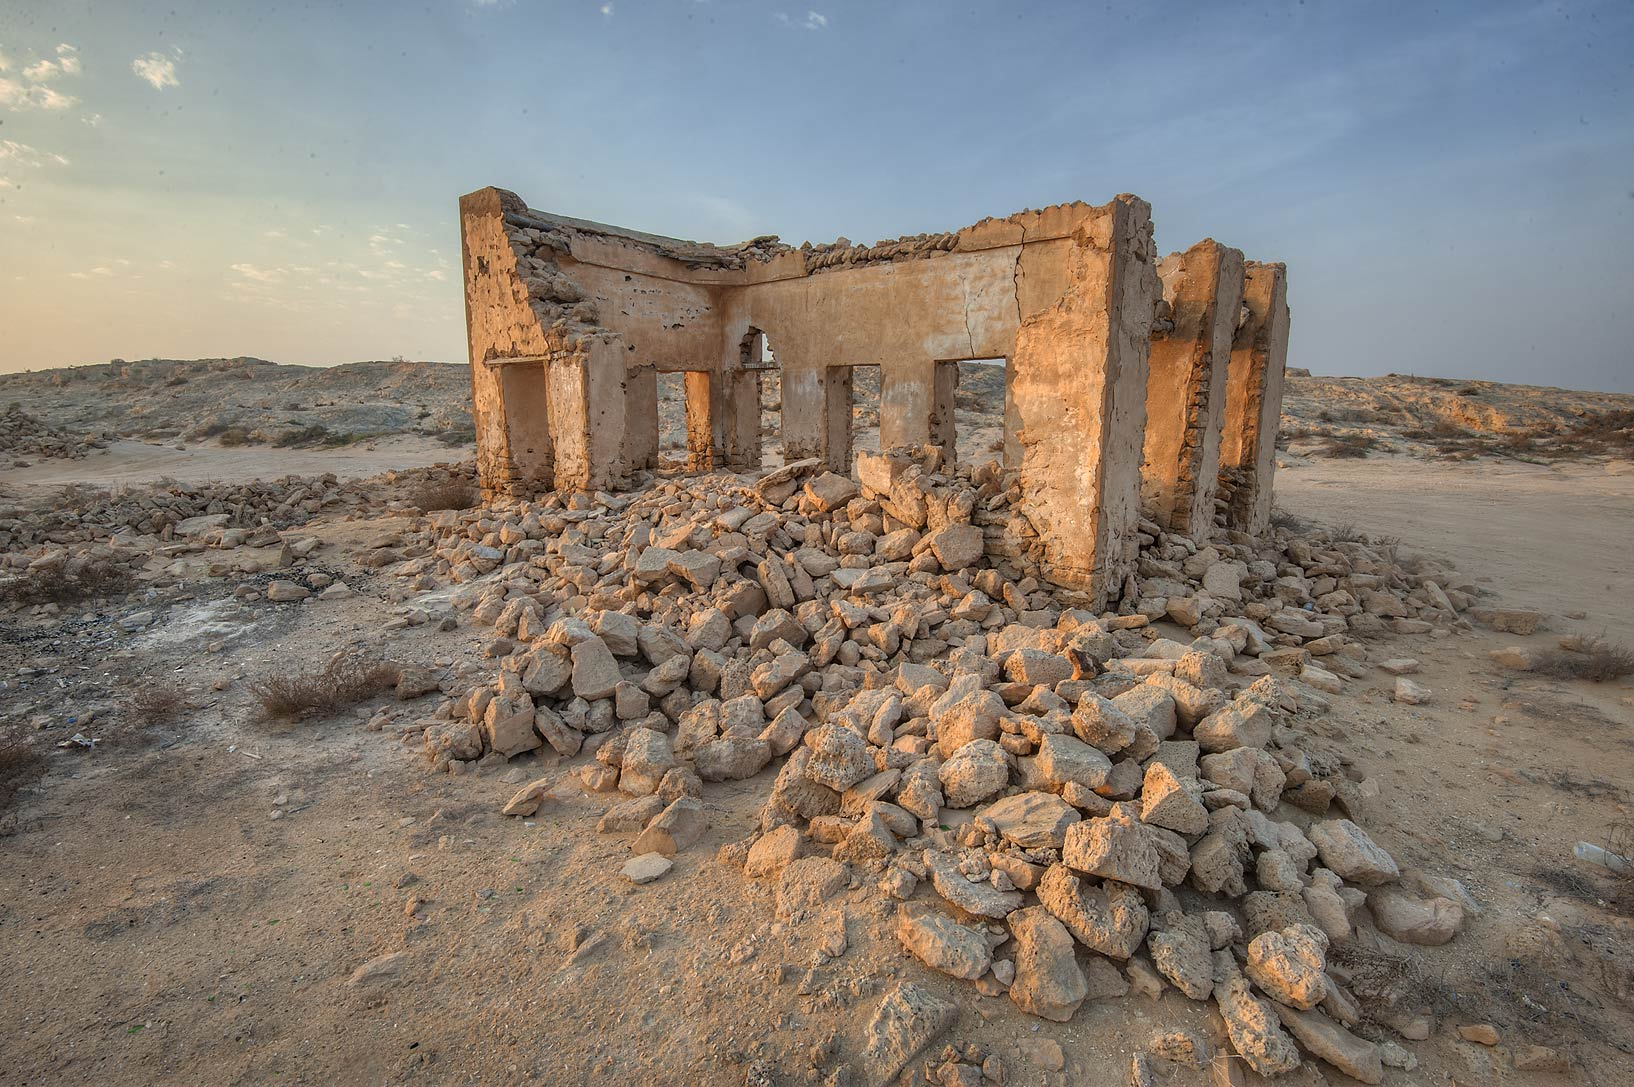 Stone walls in old fishing village (ghost town...eastern coast, Ash Shamal area. Qatar